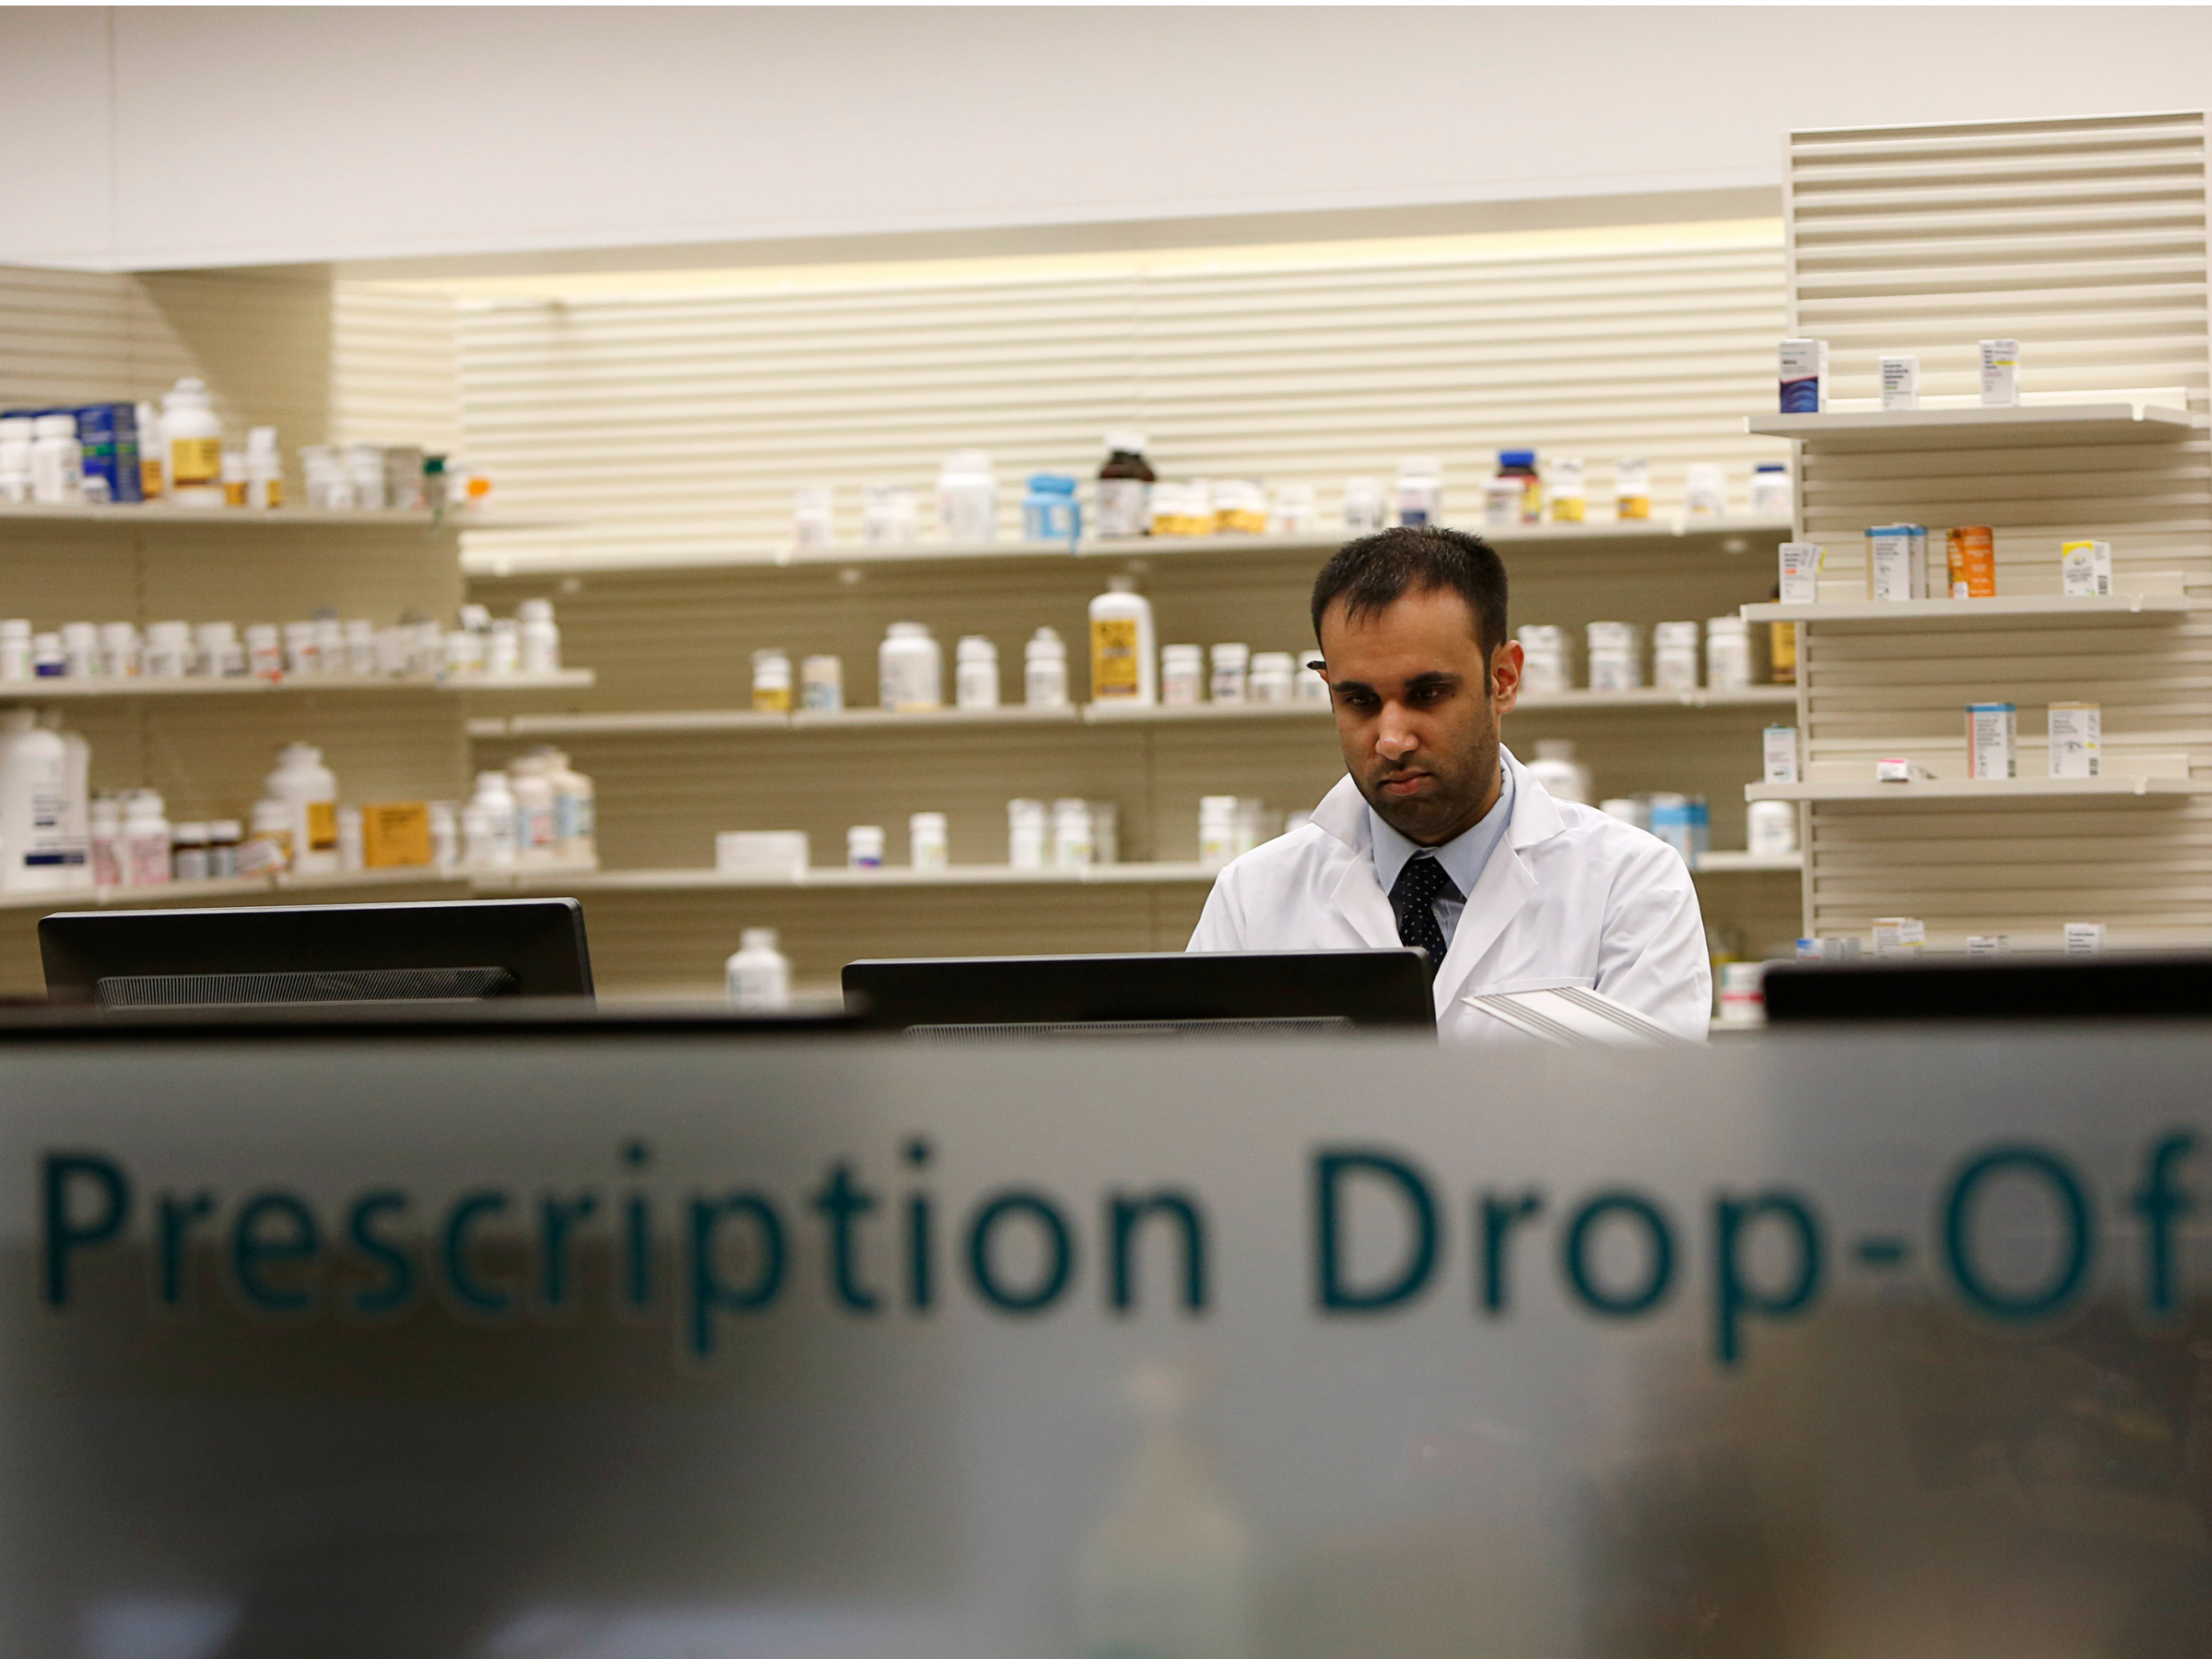 Big Pharma is quietly enlisting professors to justify $1000-per-day drugs